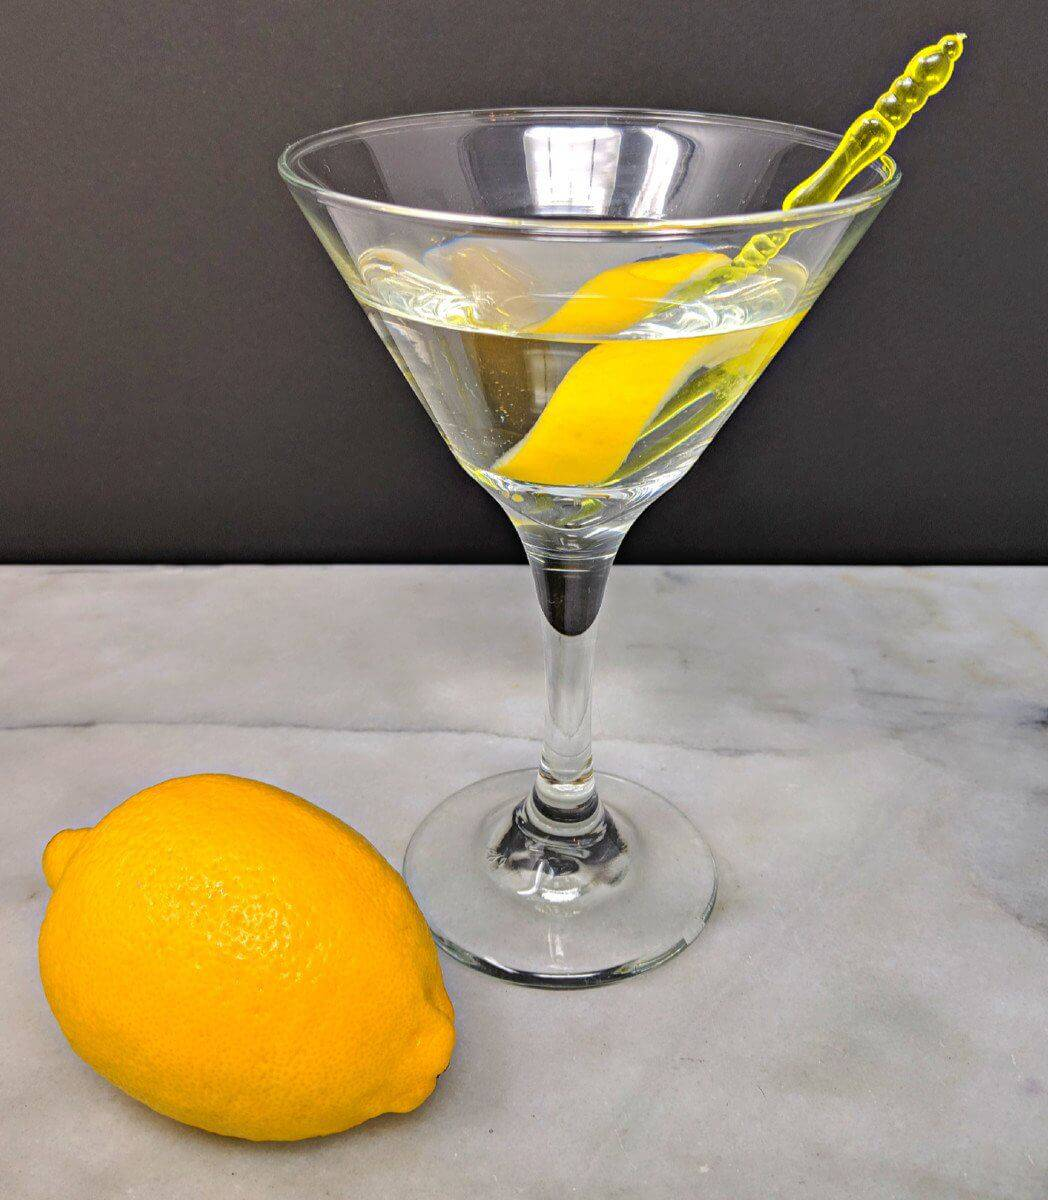 Top down shot of Vesper Martini and a fresh lemon on a marble table